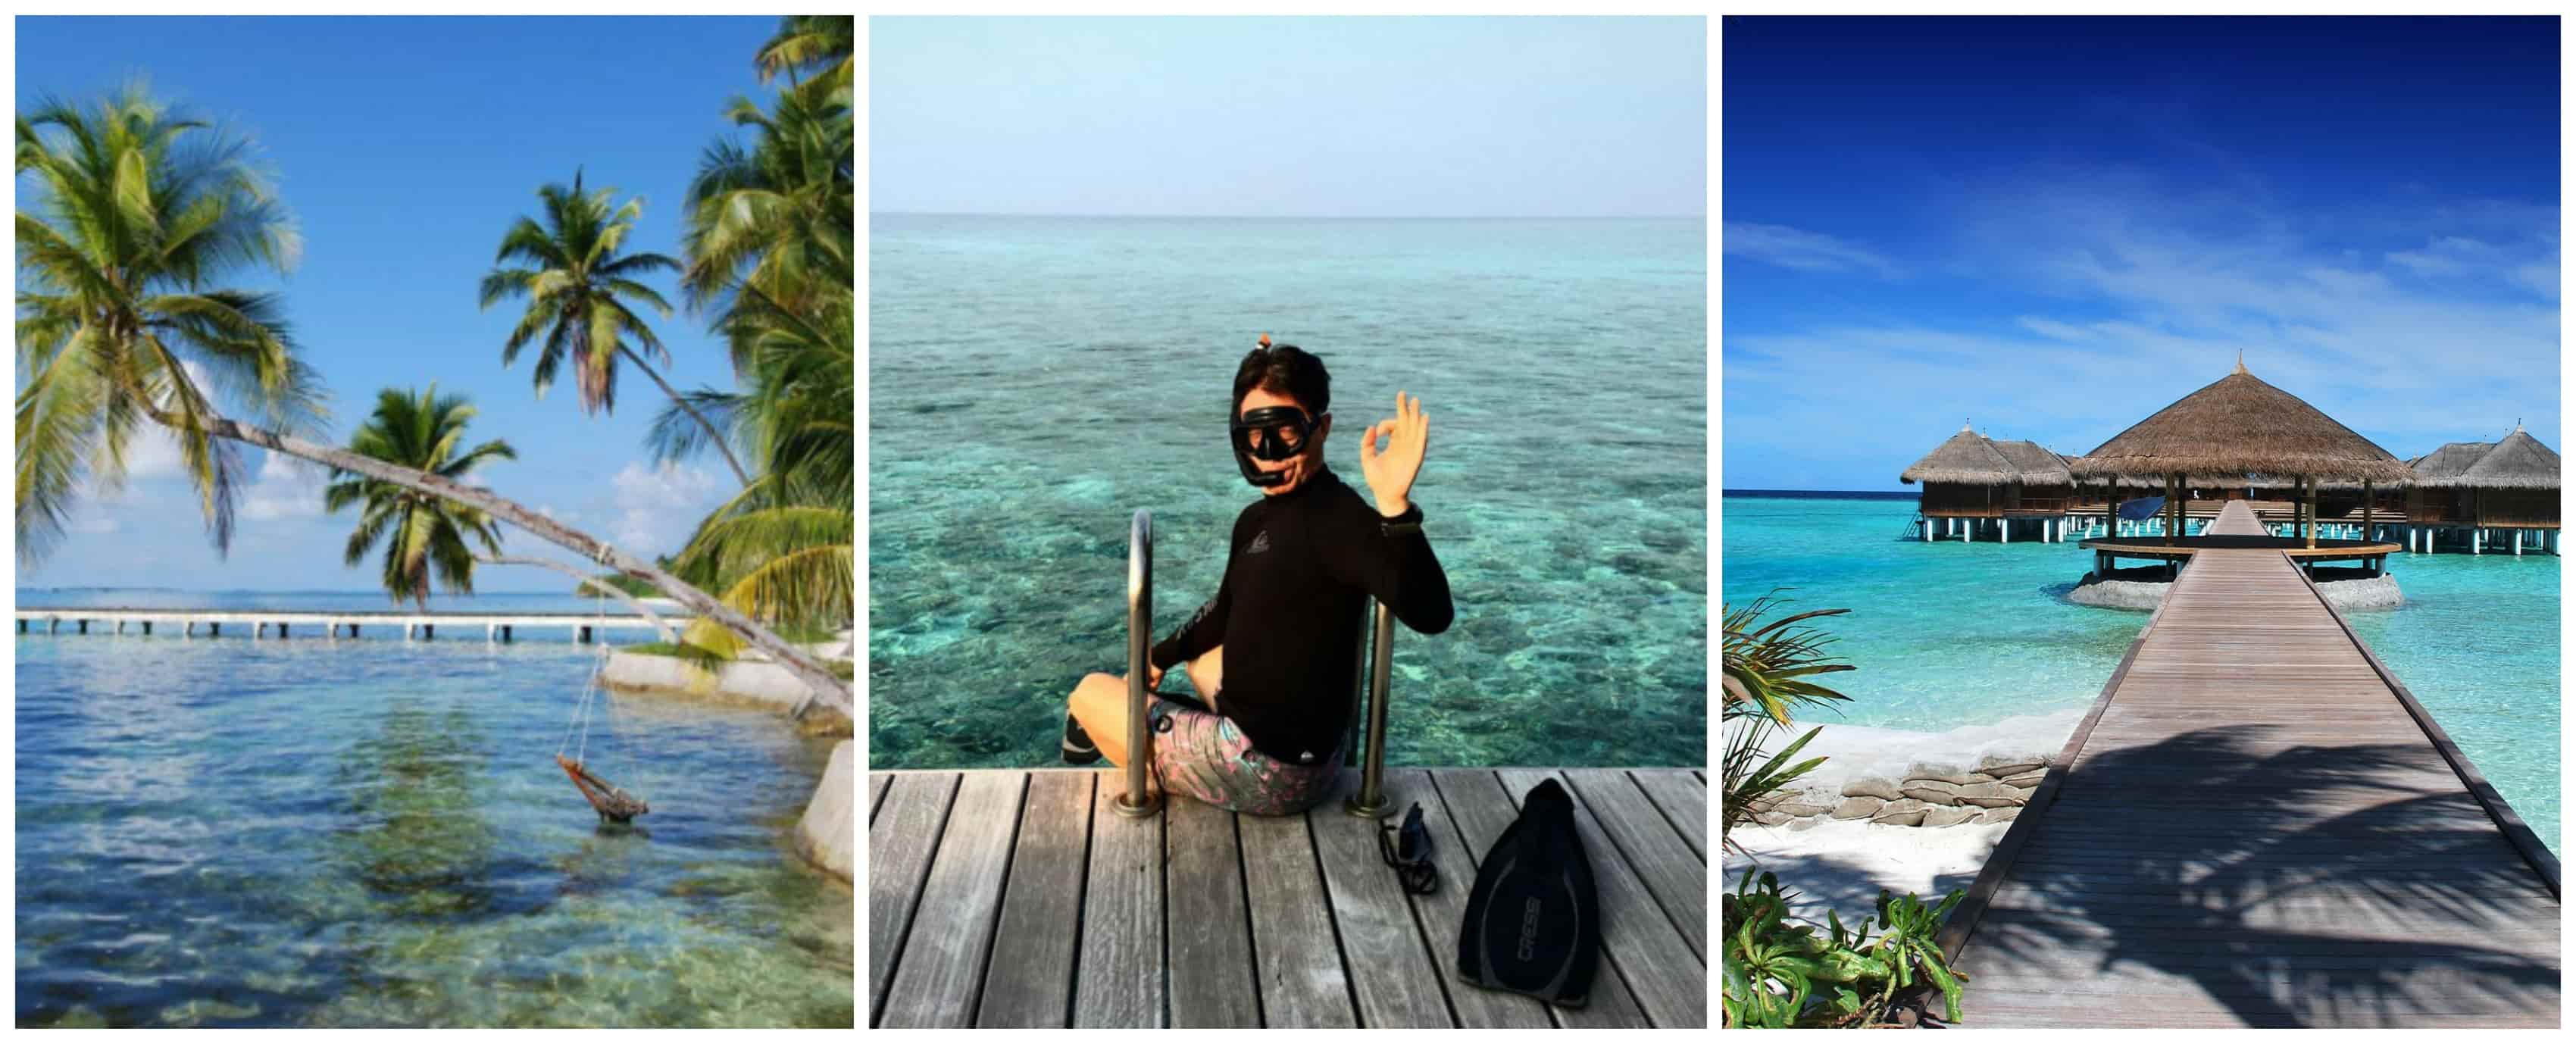 Maldives Collage-min